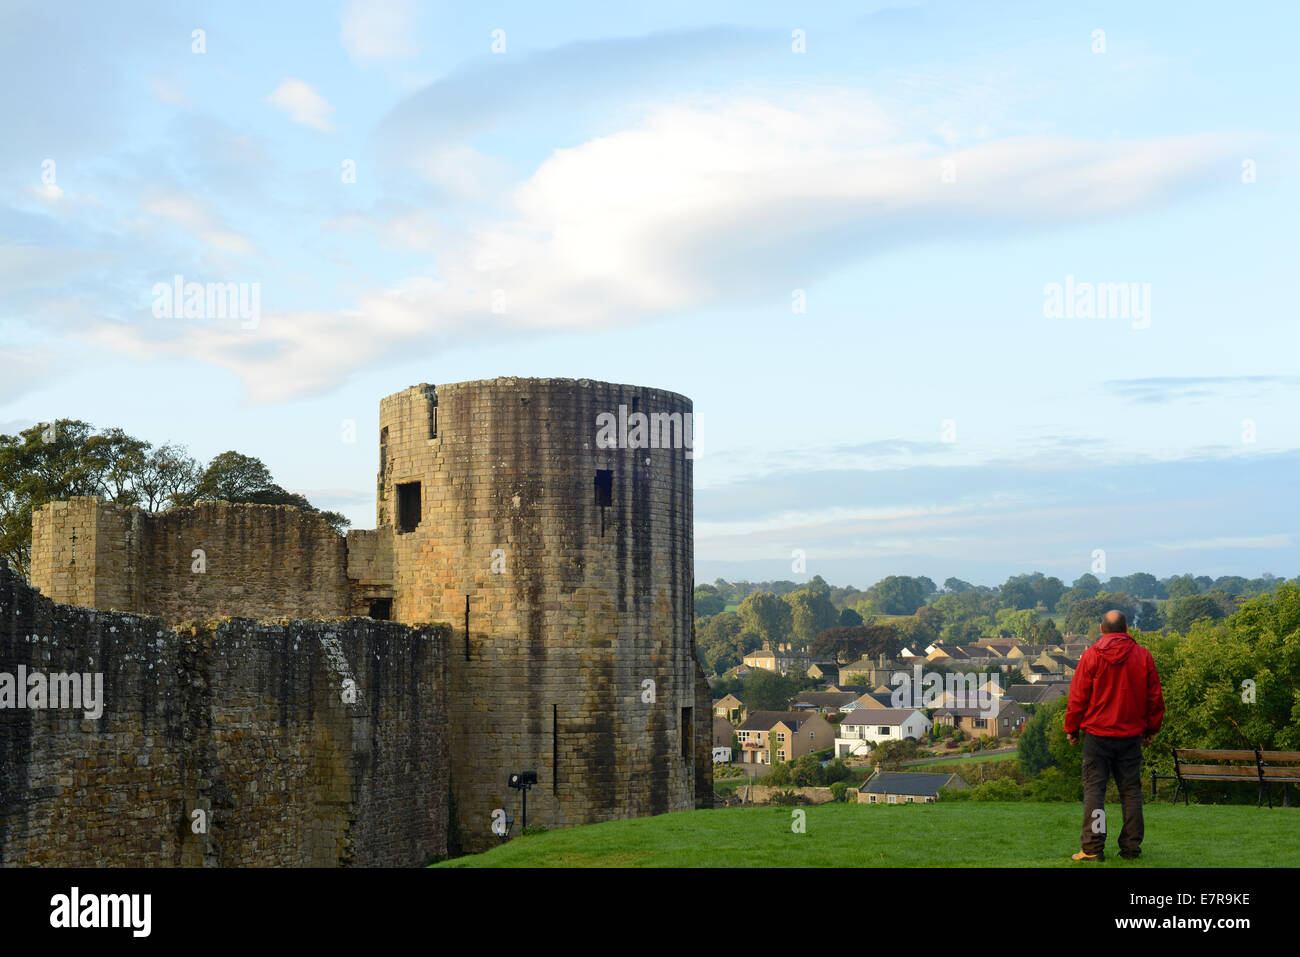 Barnard Castle, County Durham, UK. 23rd September 2014. UK Weather. A clear Autumn Day at Barnard Castle, County - Stock Image